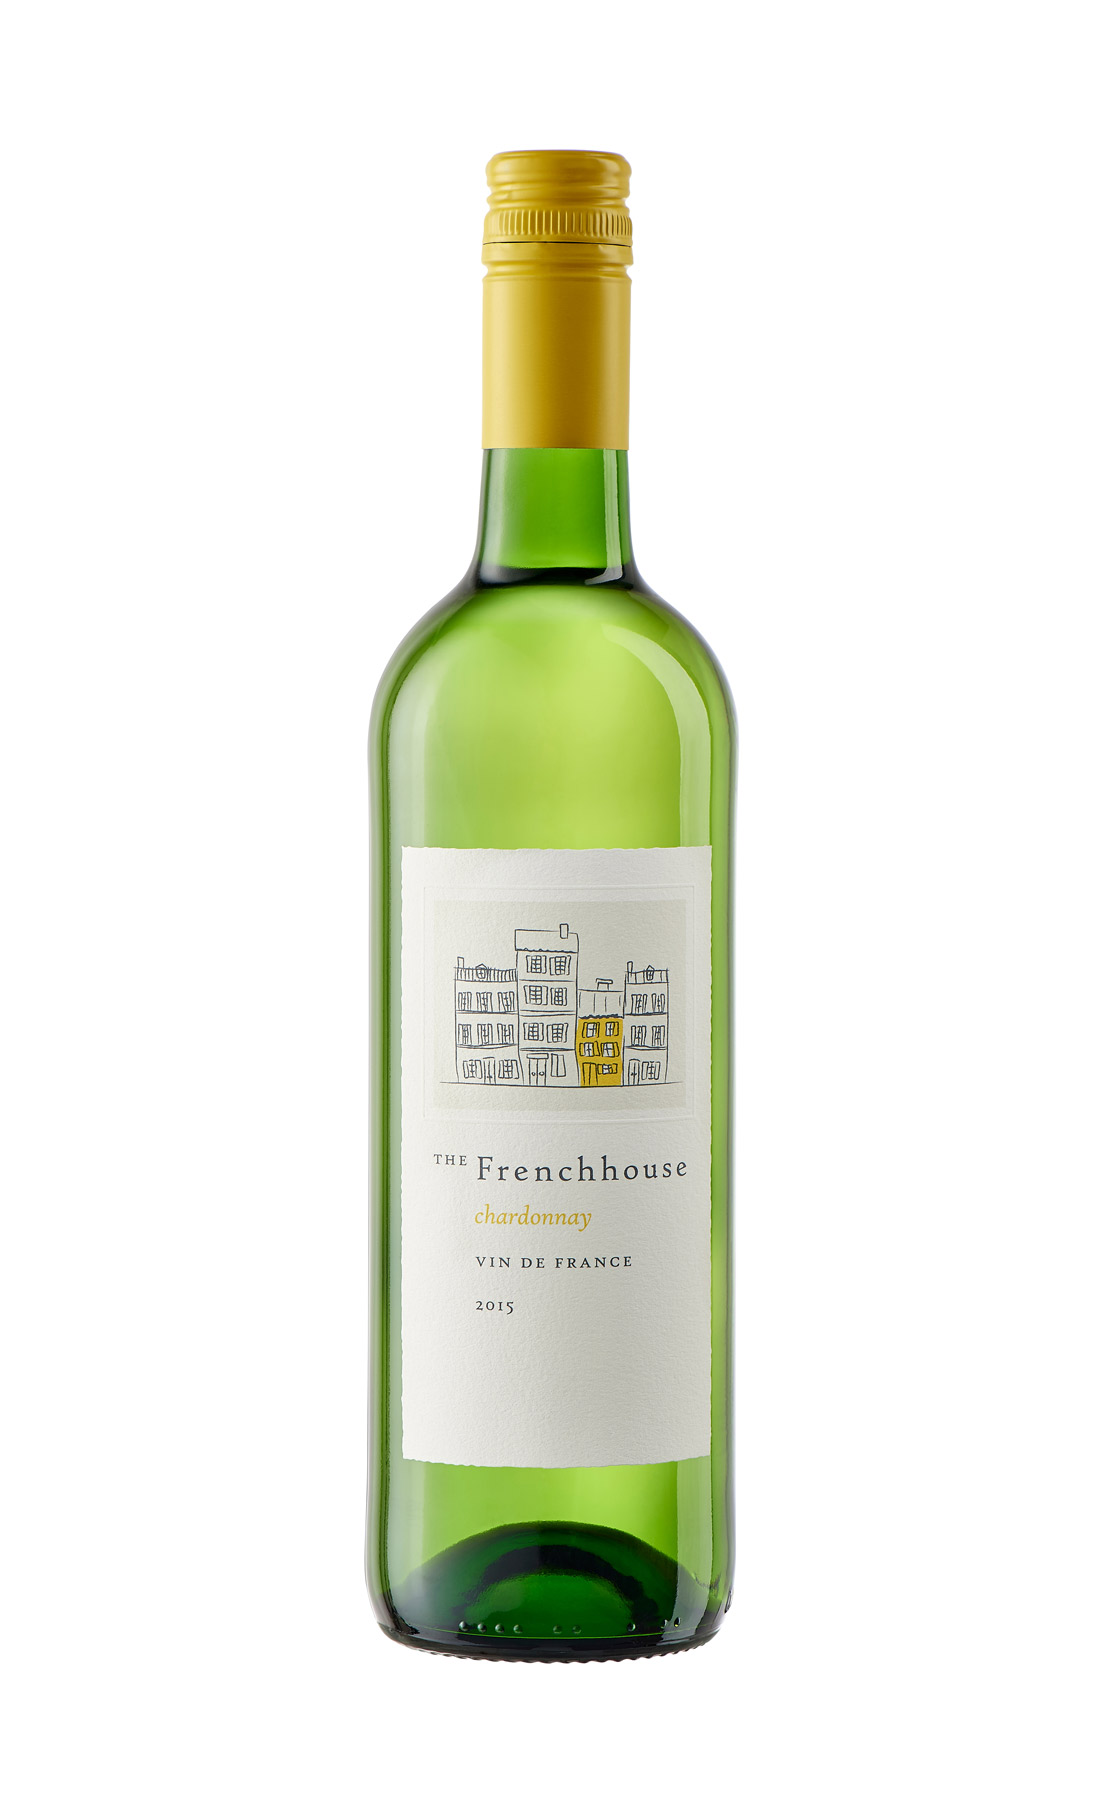 The Frenchhouse Chardonnay